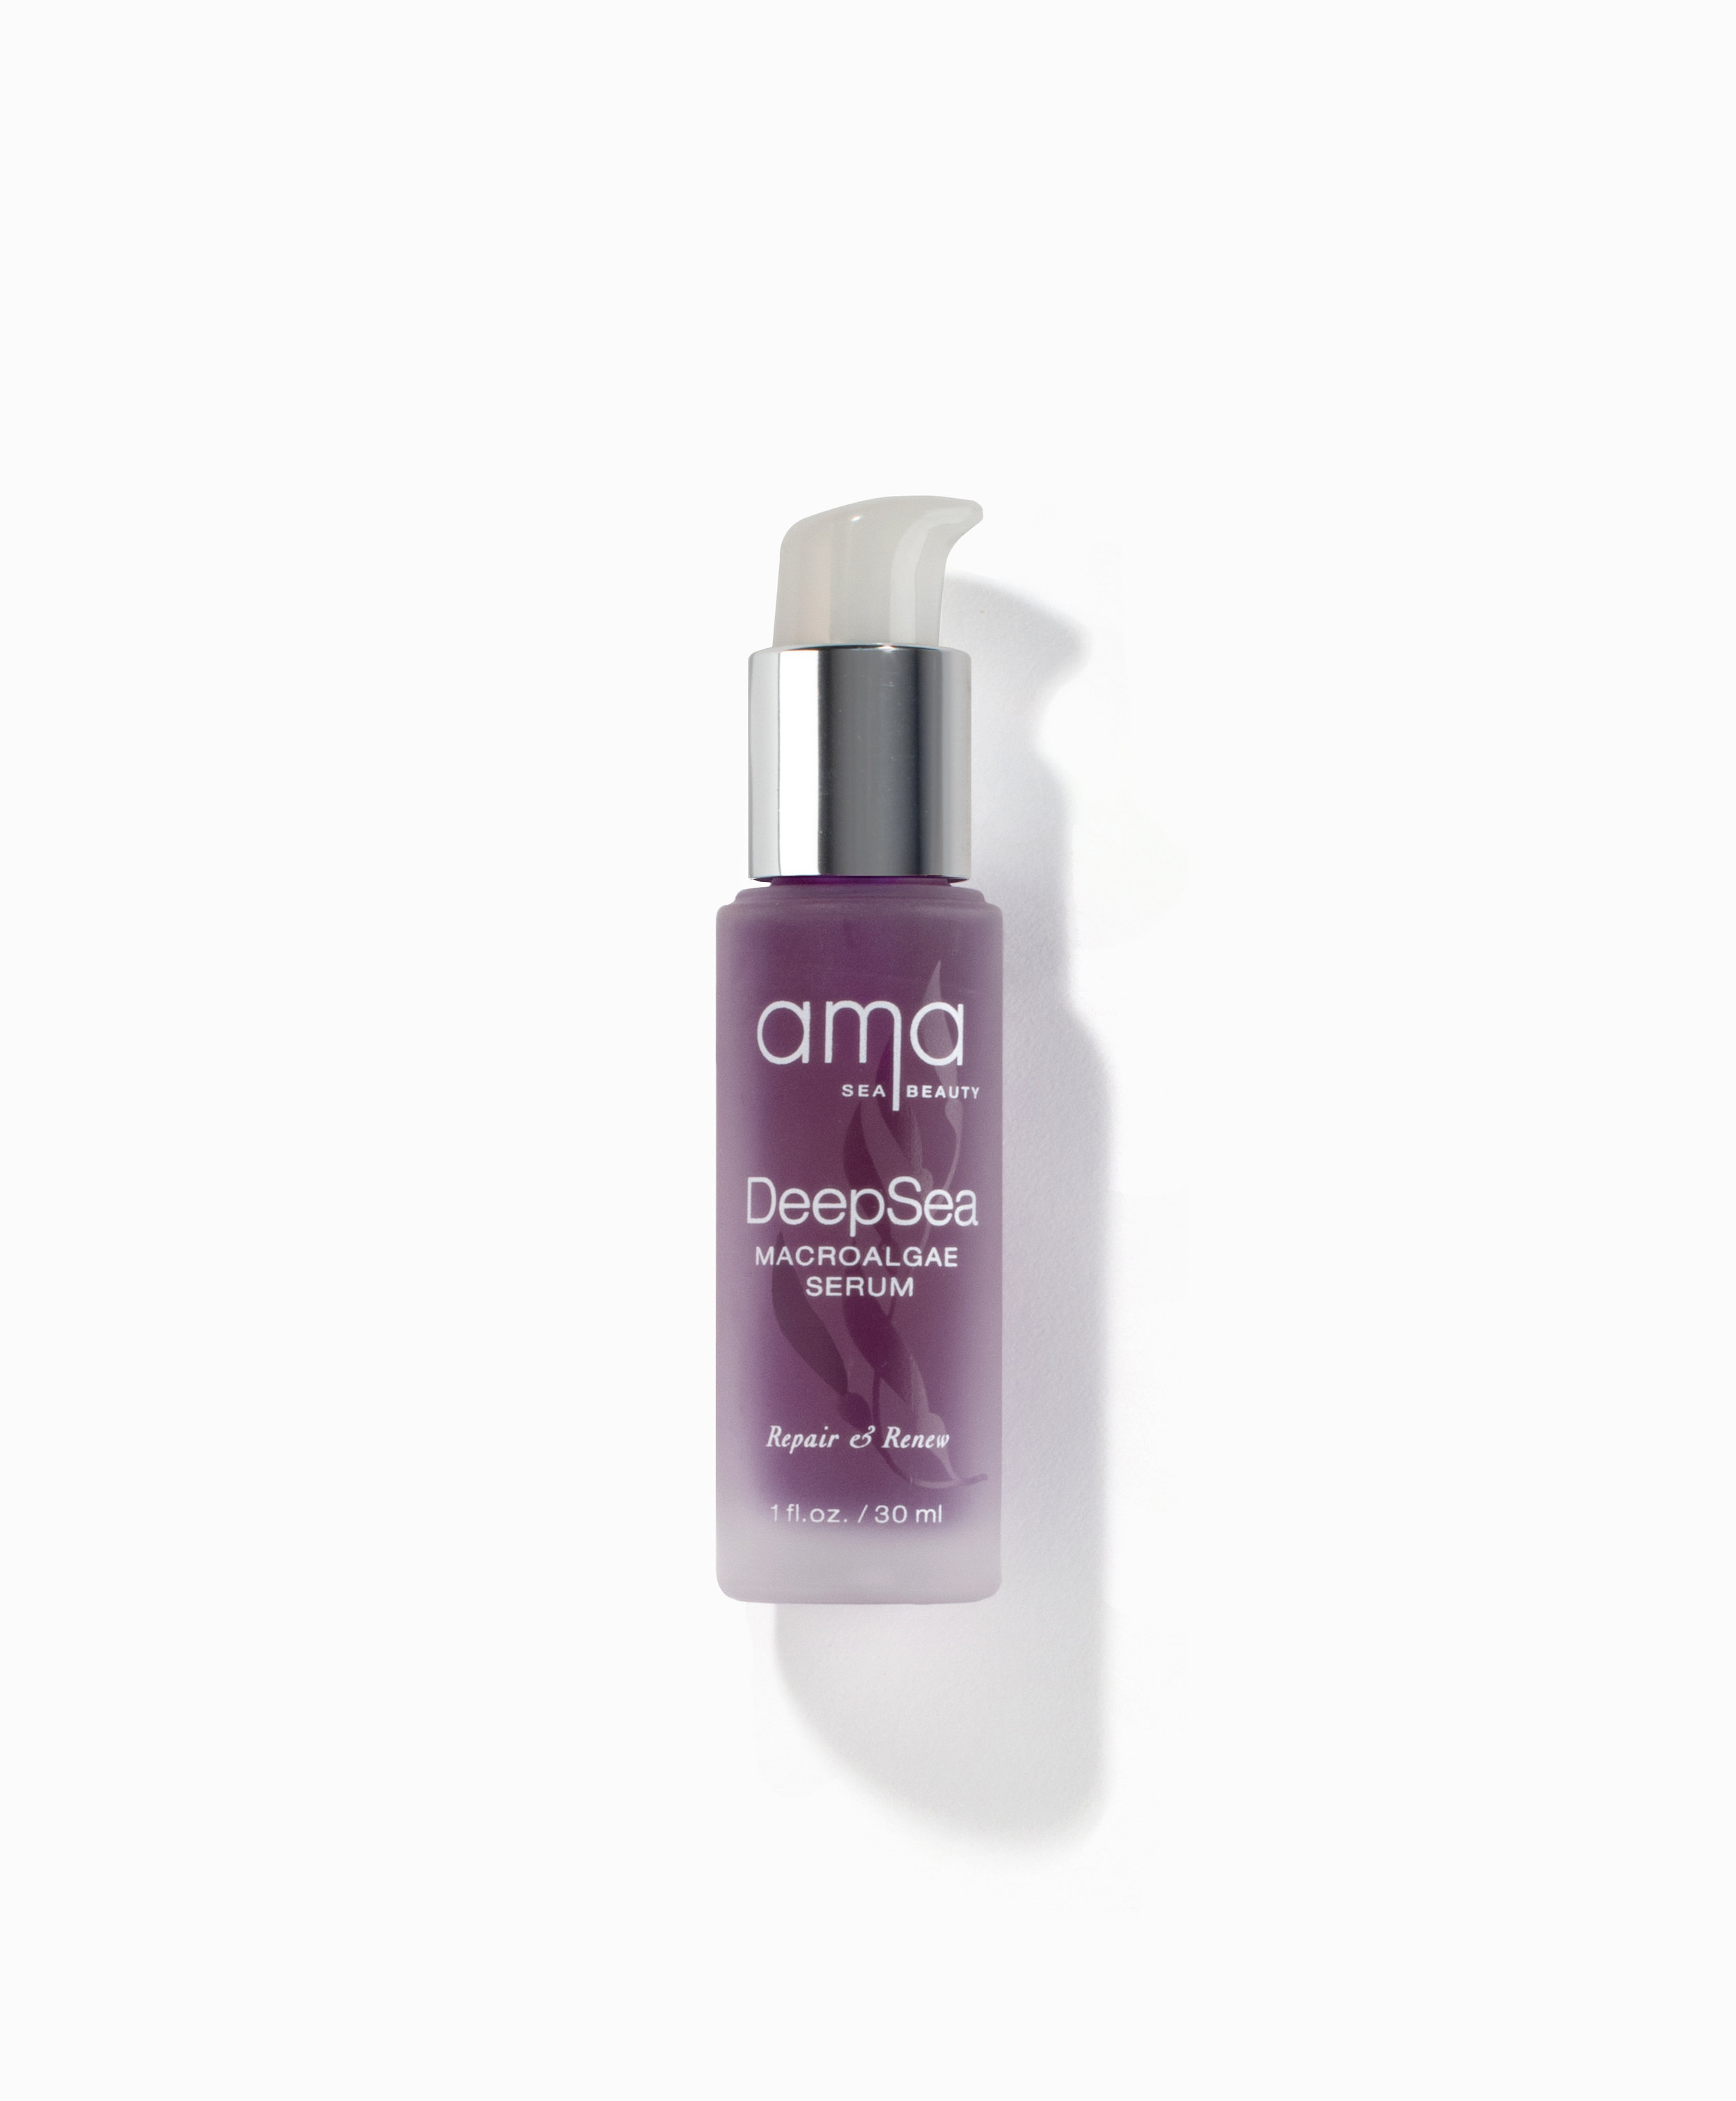 Ama Sea Beauty Deep Sea Serum.jpg